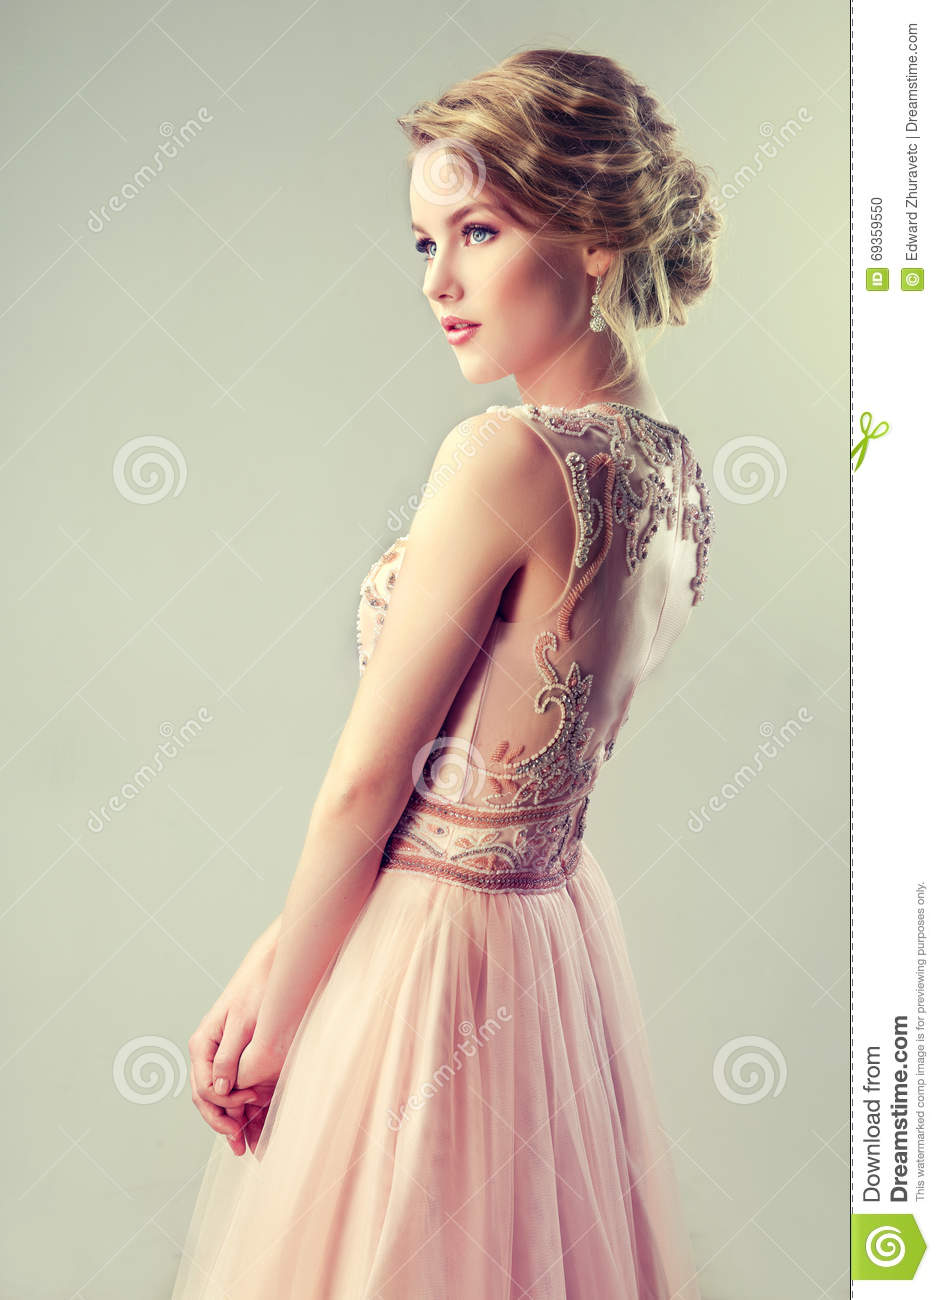 Beautiful Girl Light Brown Hair With An Elegant Hairstyle